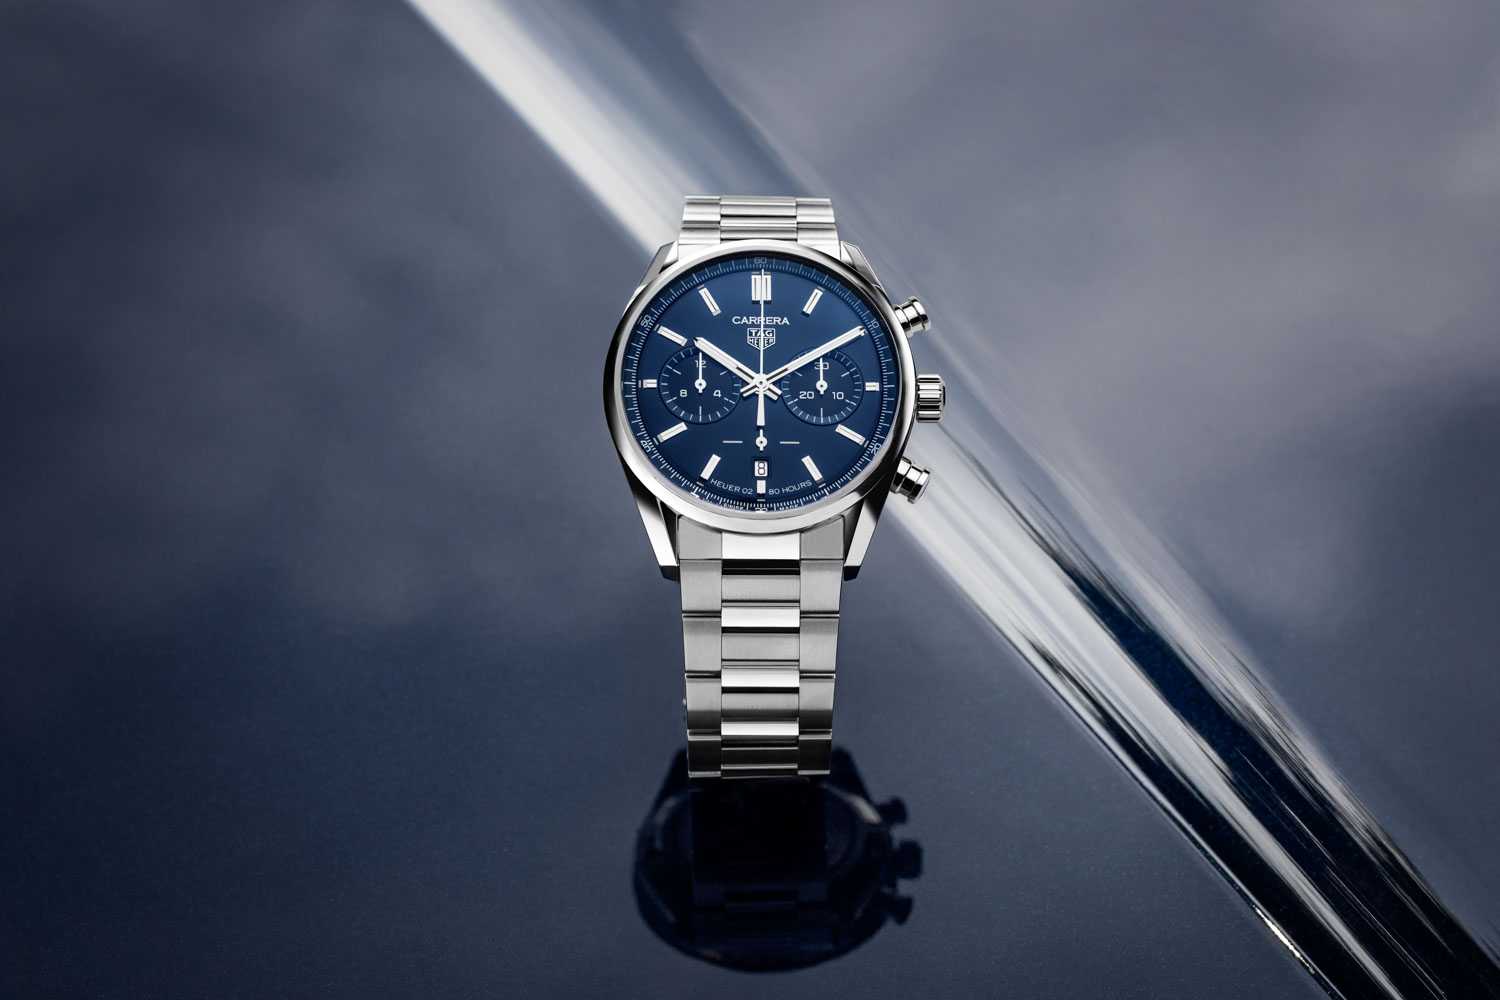 The TAG Heuer Carrera Chronograph 42 mm Calibre Heuer 02 Automatic, seen here with the blue dial, fitted on the stainless-steel H-shaped bracelet